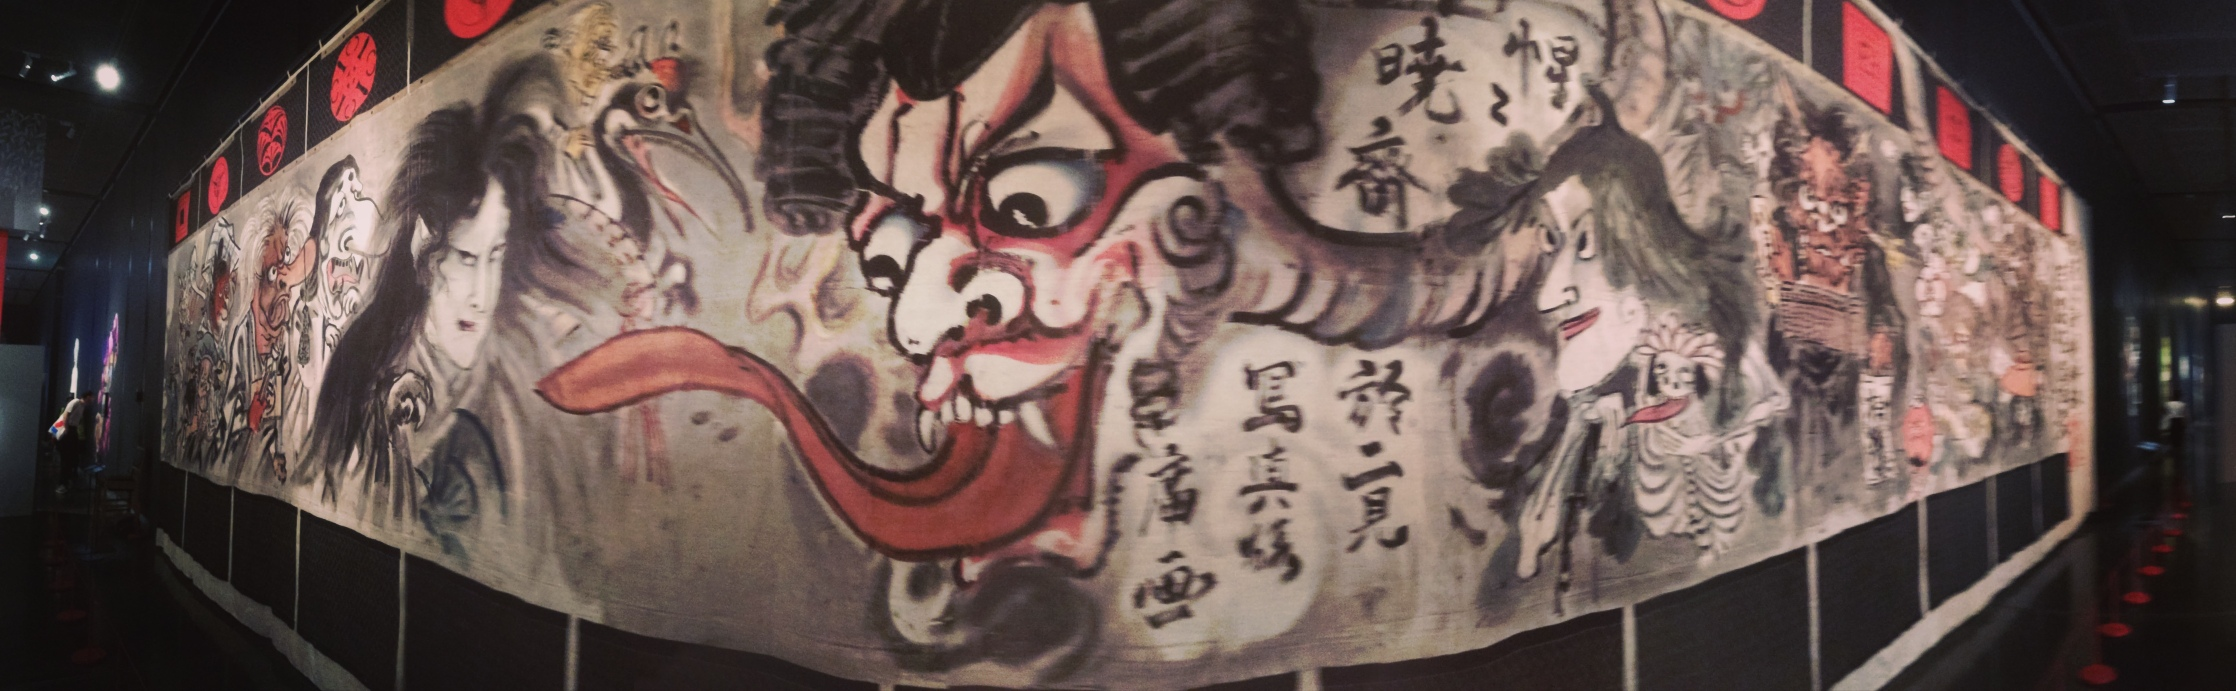 Kawanabe Kyosai 's theatre curtain certainly is an impressive piece of work.